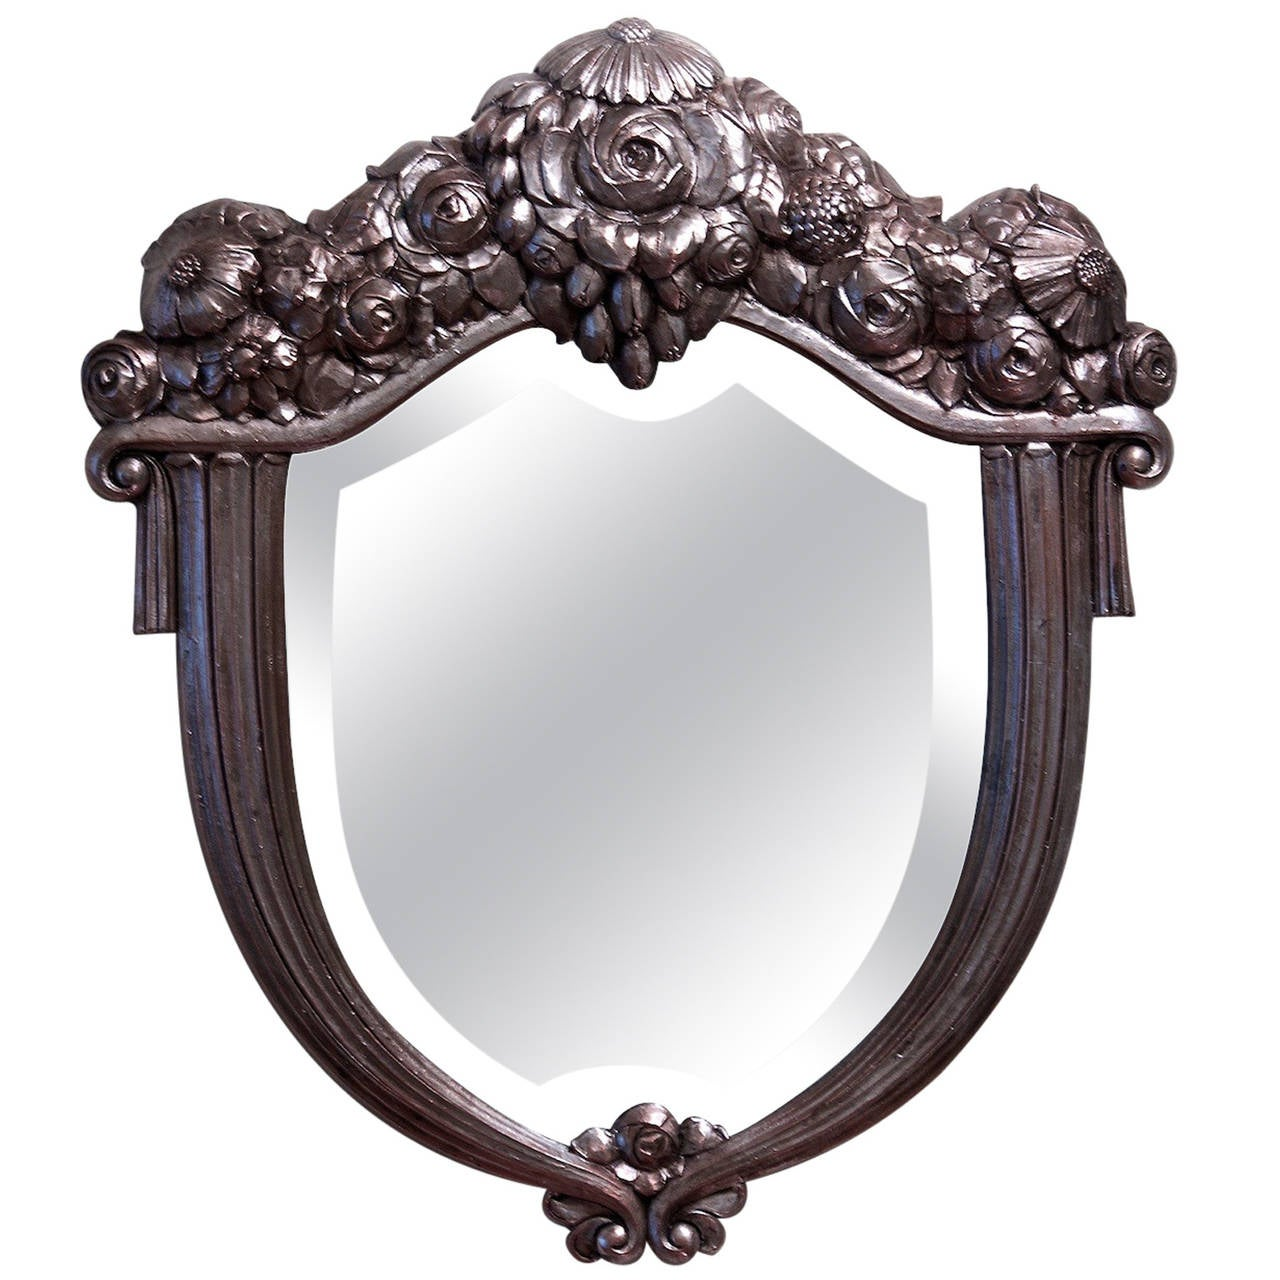 Paul follot silver leaf mirror for sale at 1stdibs for Silver mirrors for sale